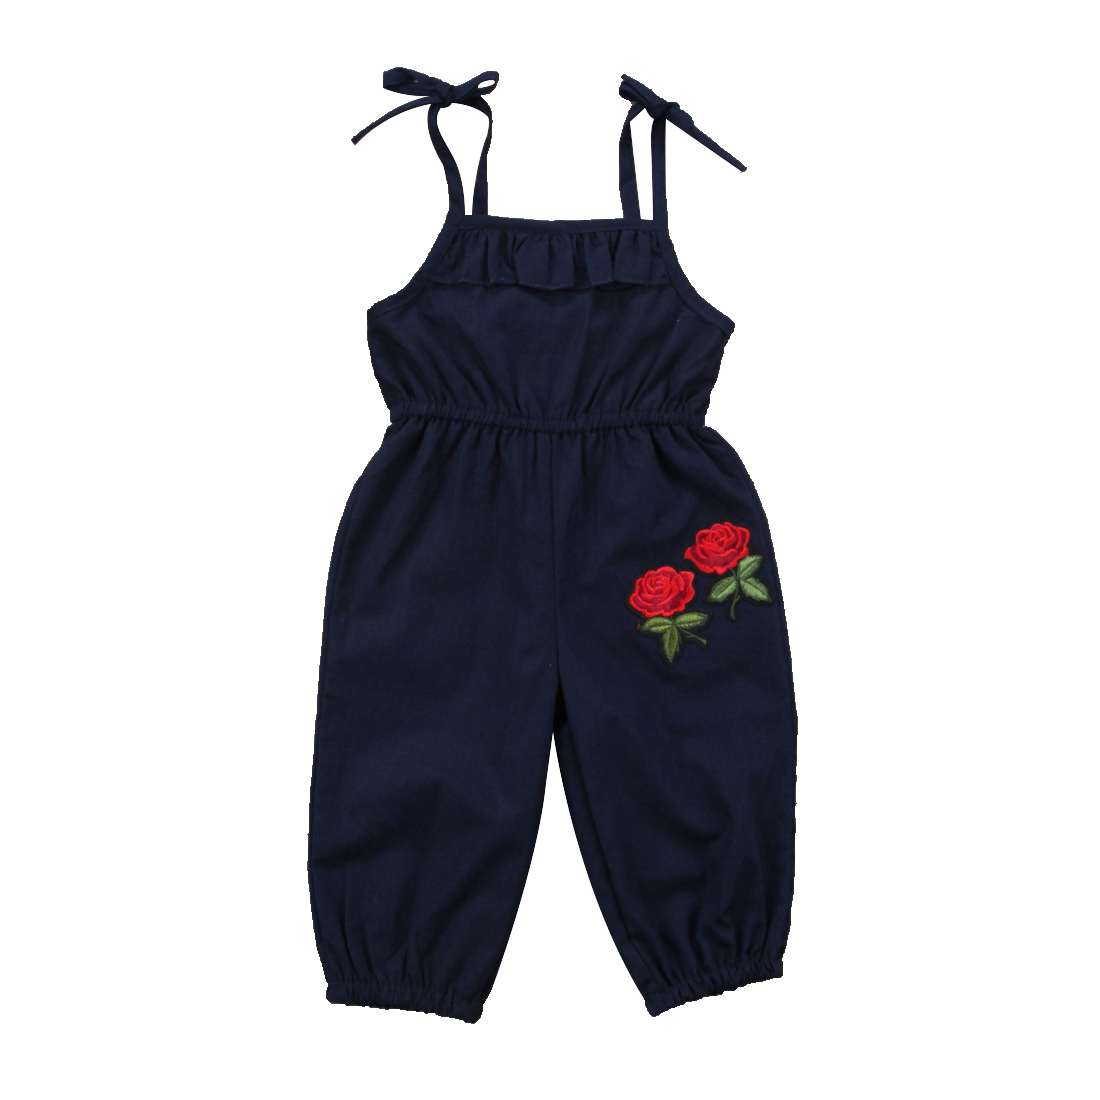 Strap Kids Baby Girls Embroideried Floral Rompers Sleeveless Blue Summer Romper Jumpsuit Playsuit Outfit Clothes 1-6Y